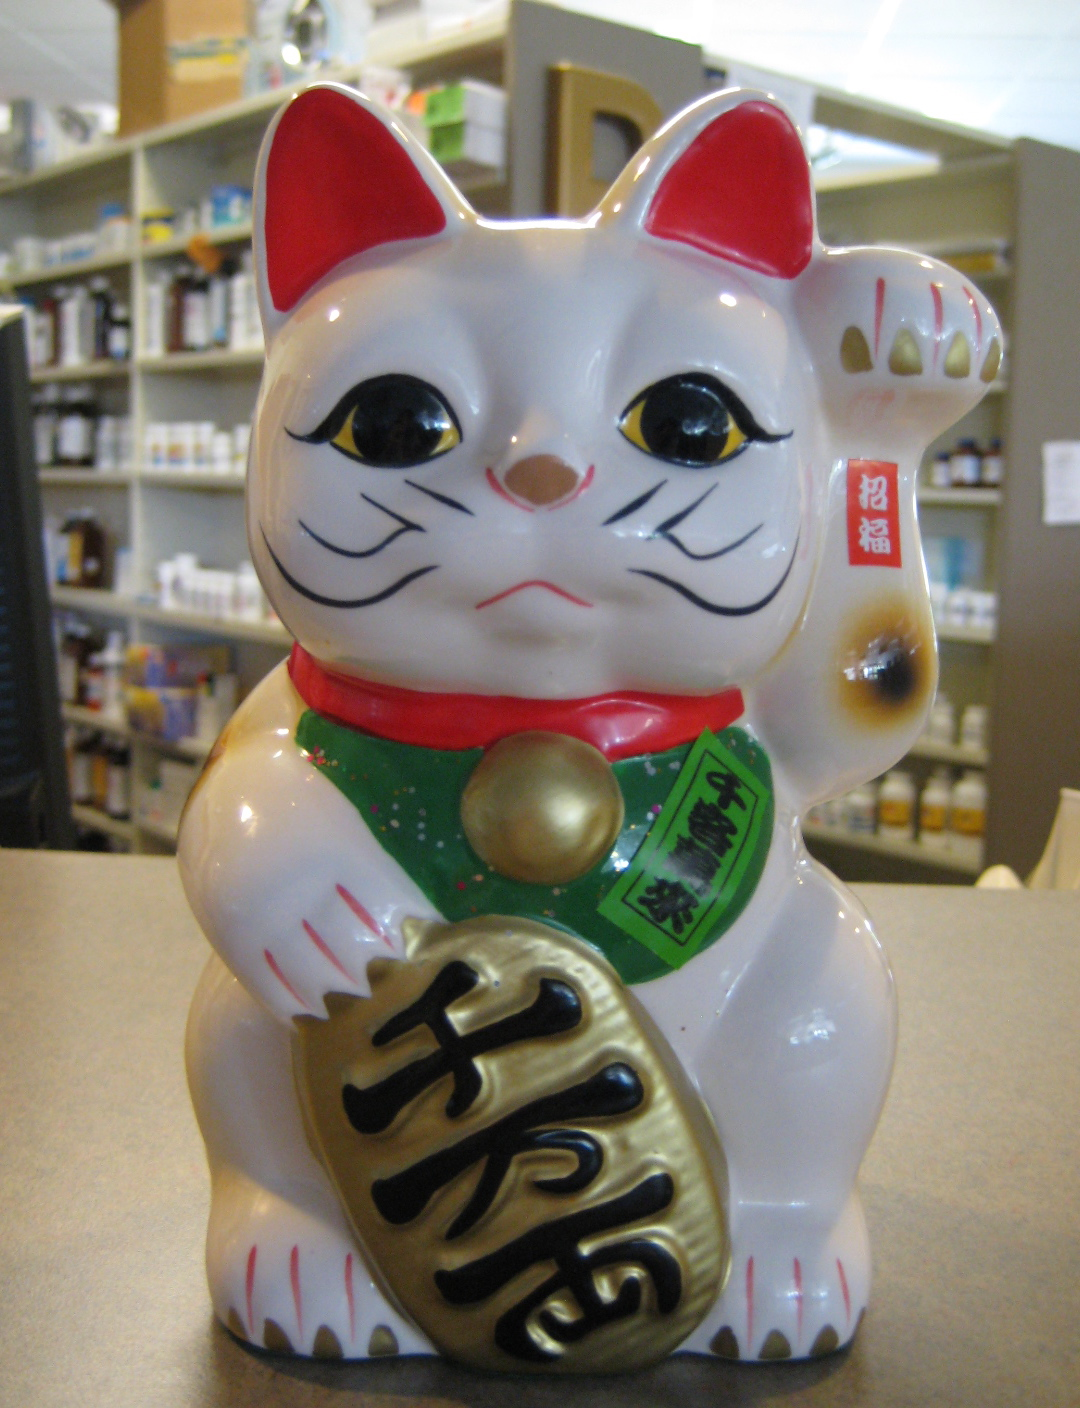 Things That Bring Good Luck the lucky cat brings good luck to the pharmacy.